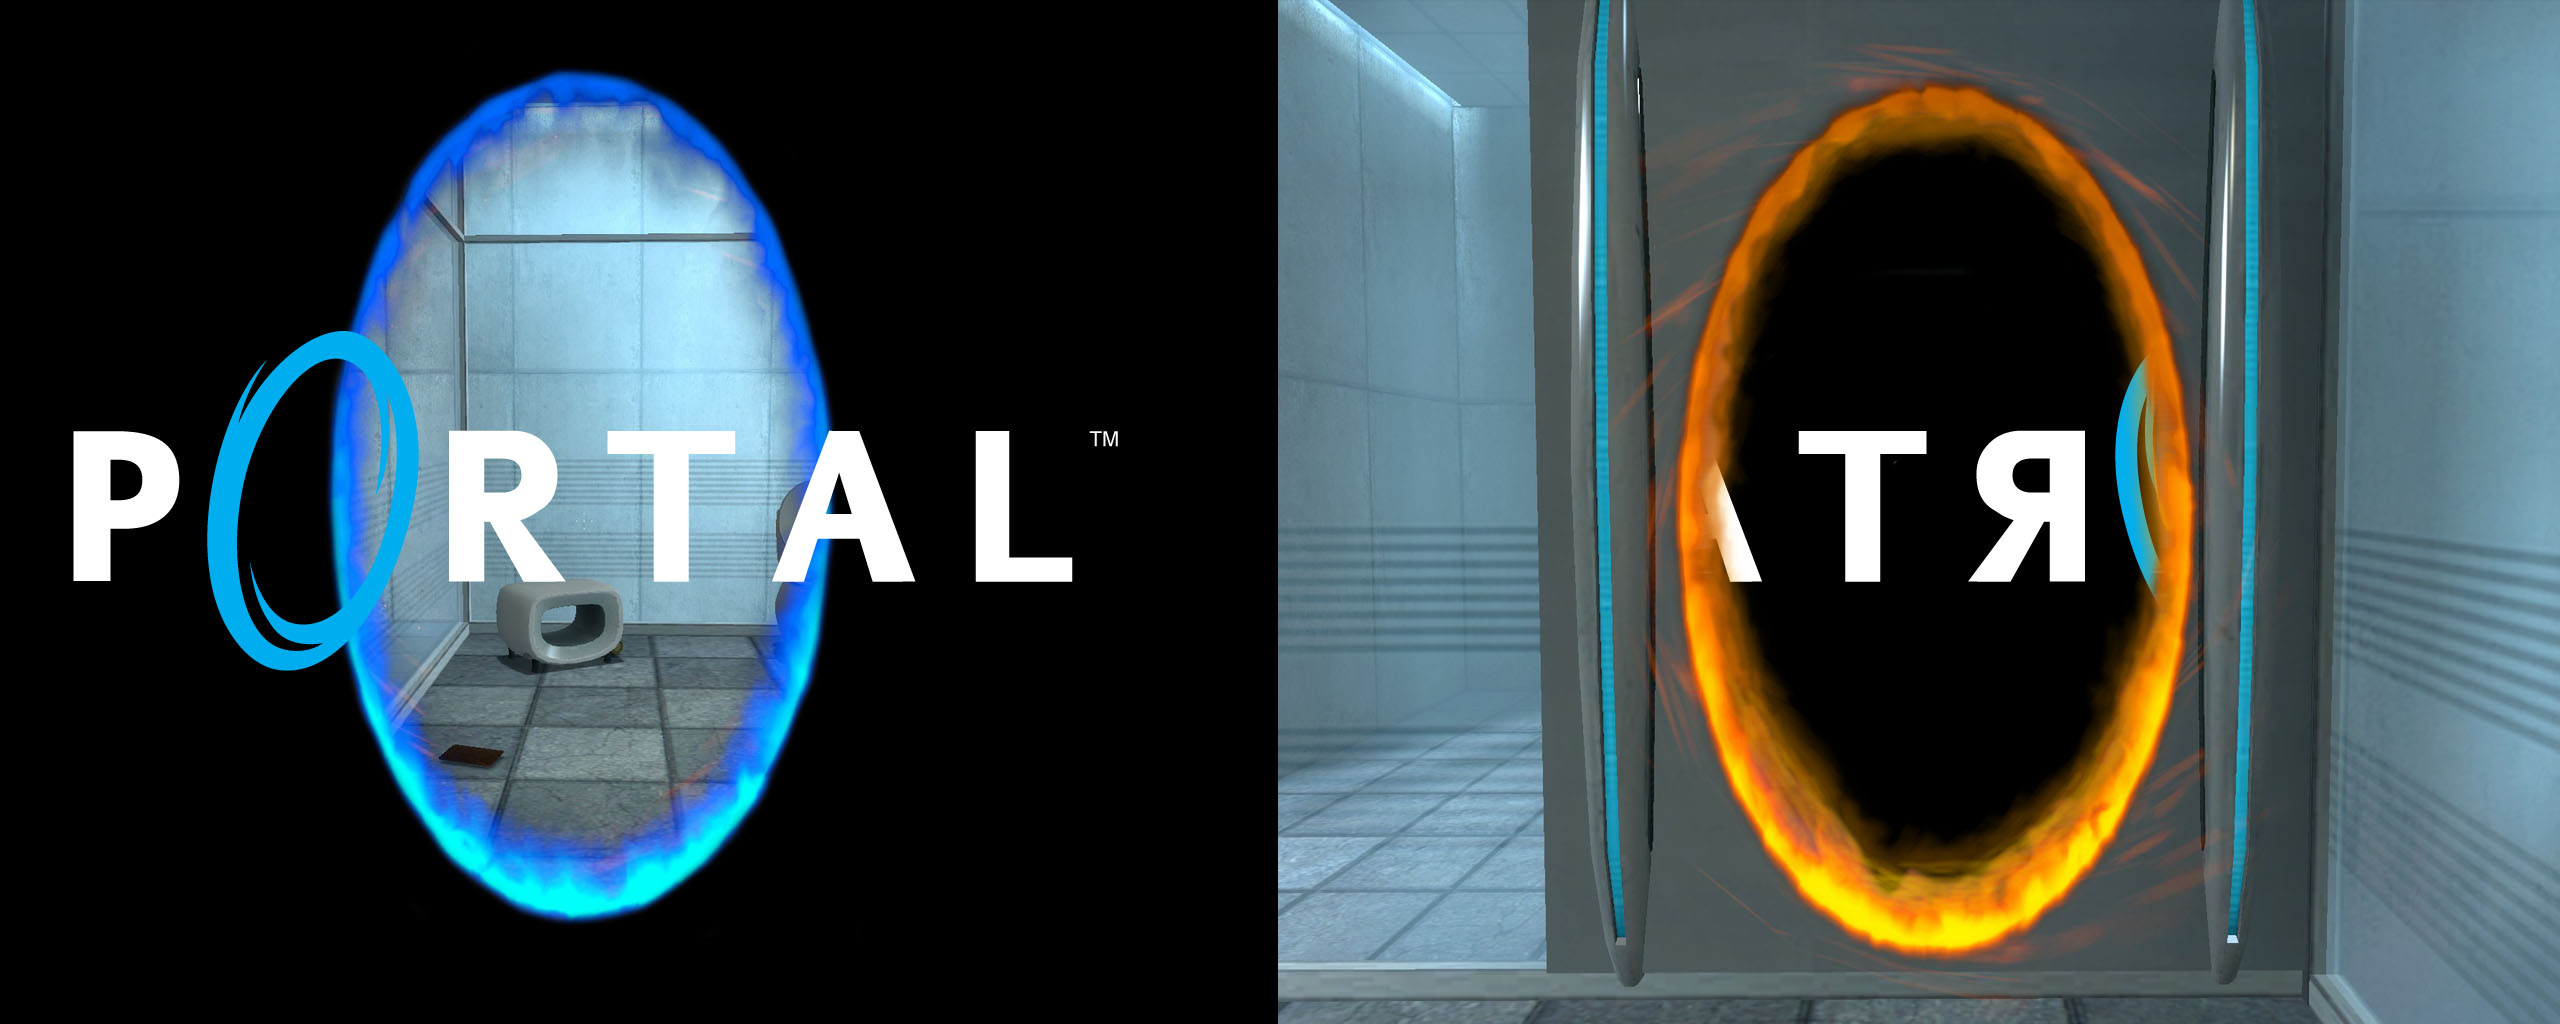 Portal Wapo Wallpaper 2560x1024 Portal Wapo Portal Dual Screen 2560x1024